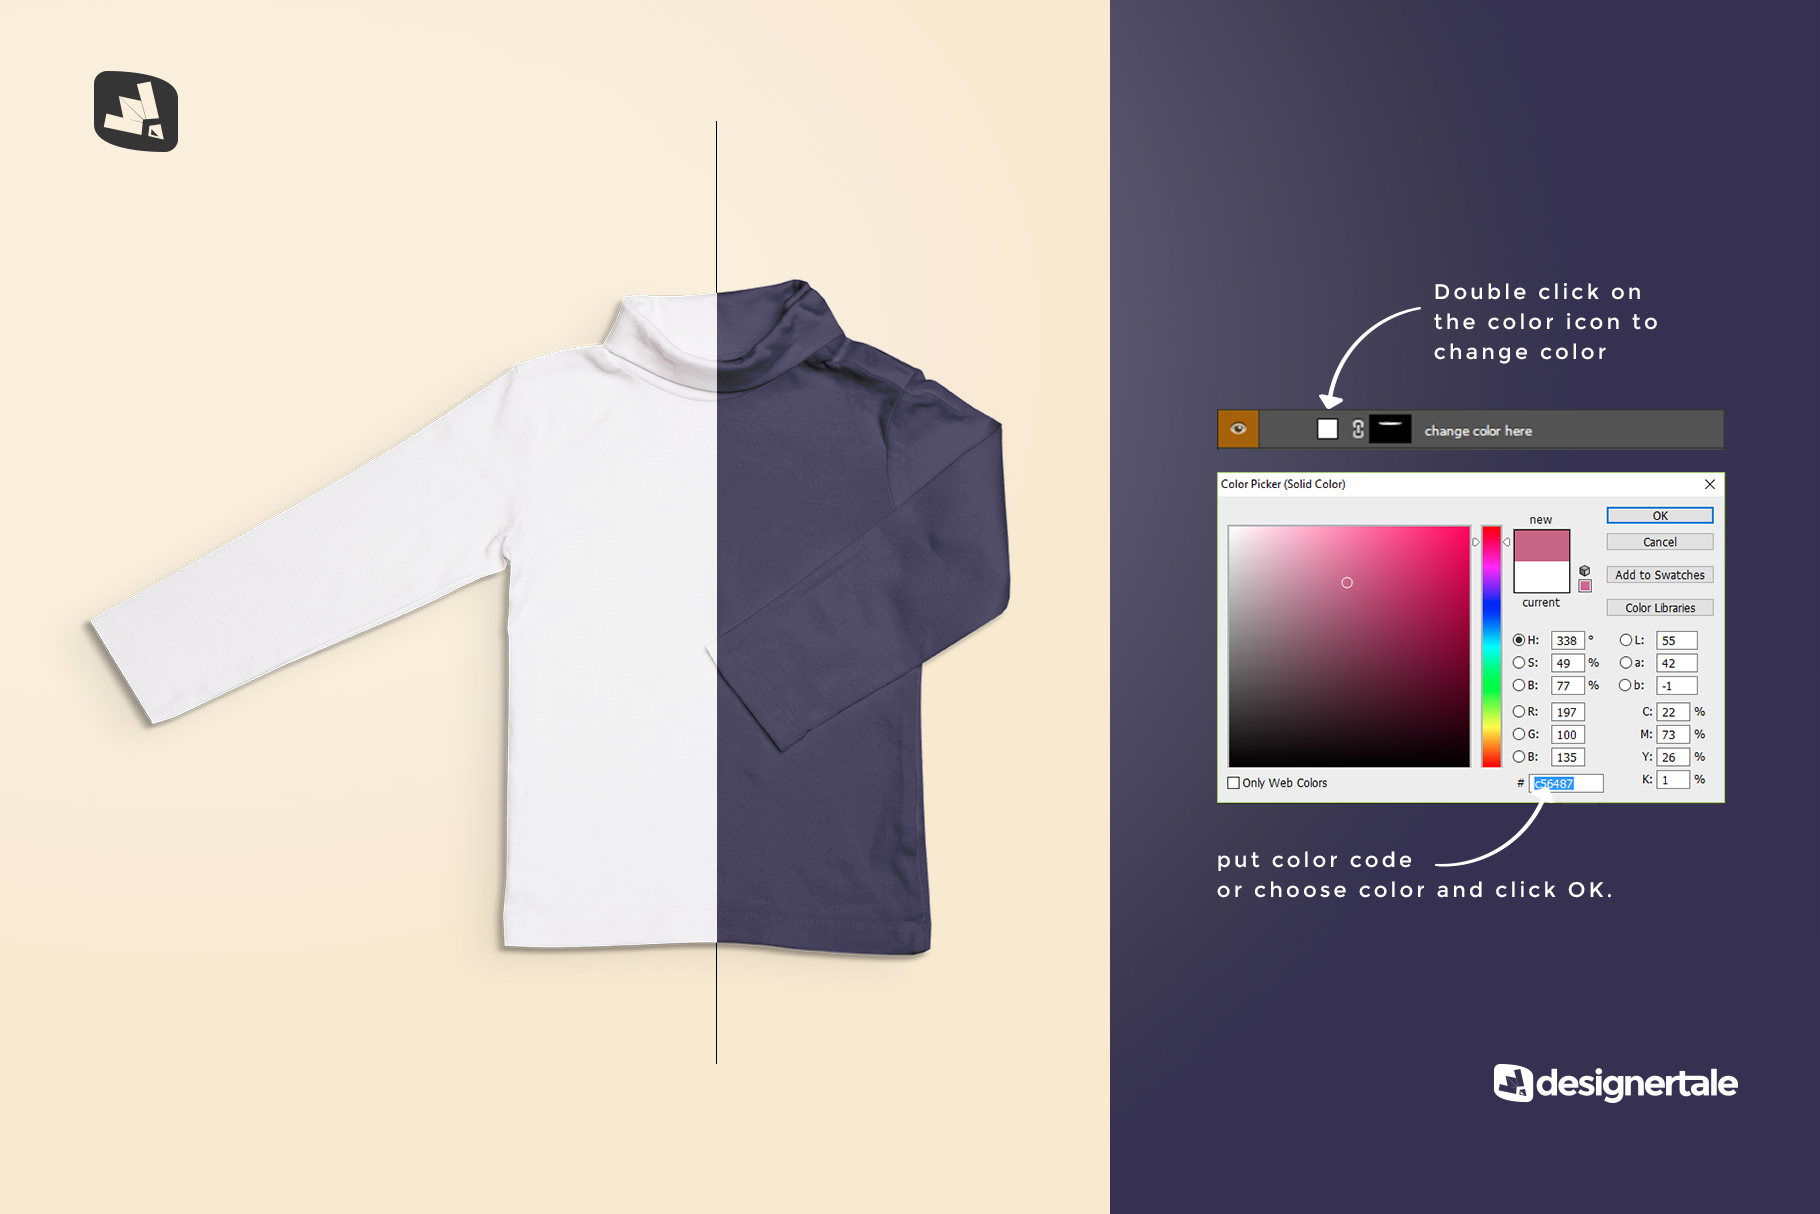 how to change color of the top view toddler turtle neck tshirt mockup